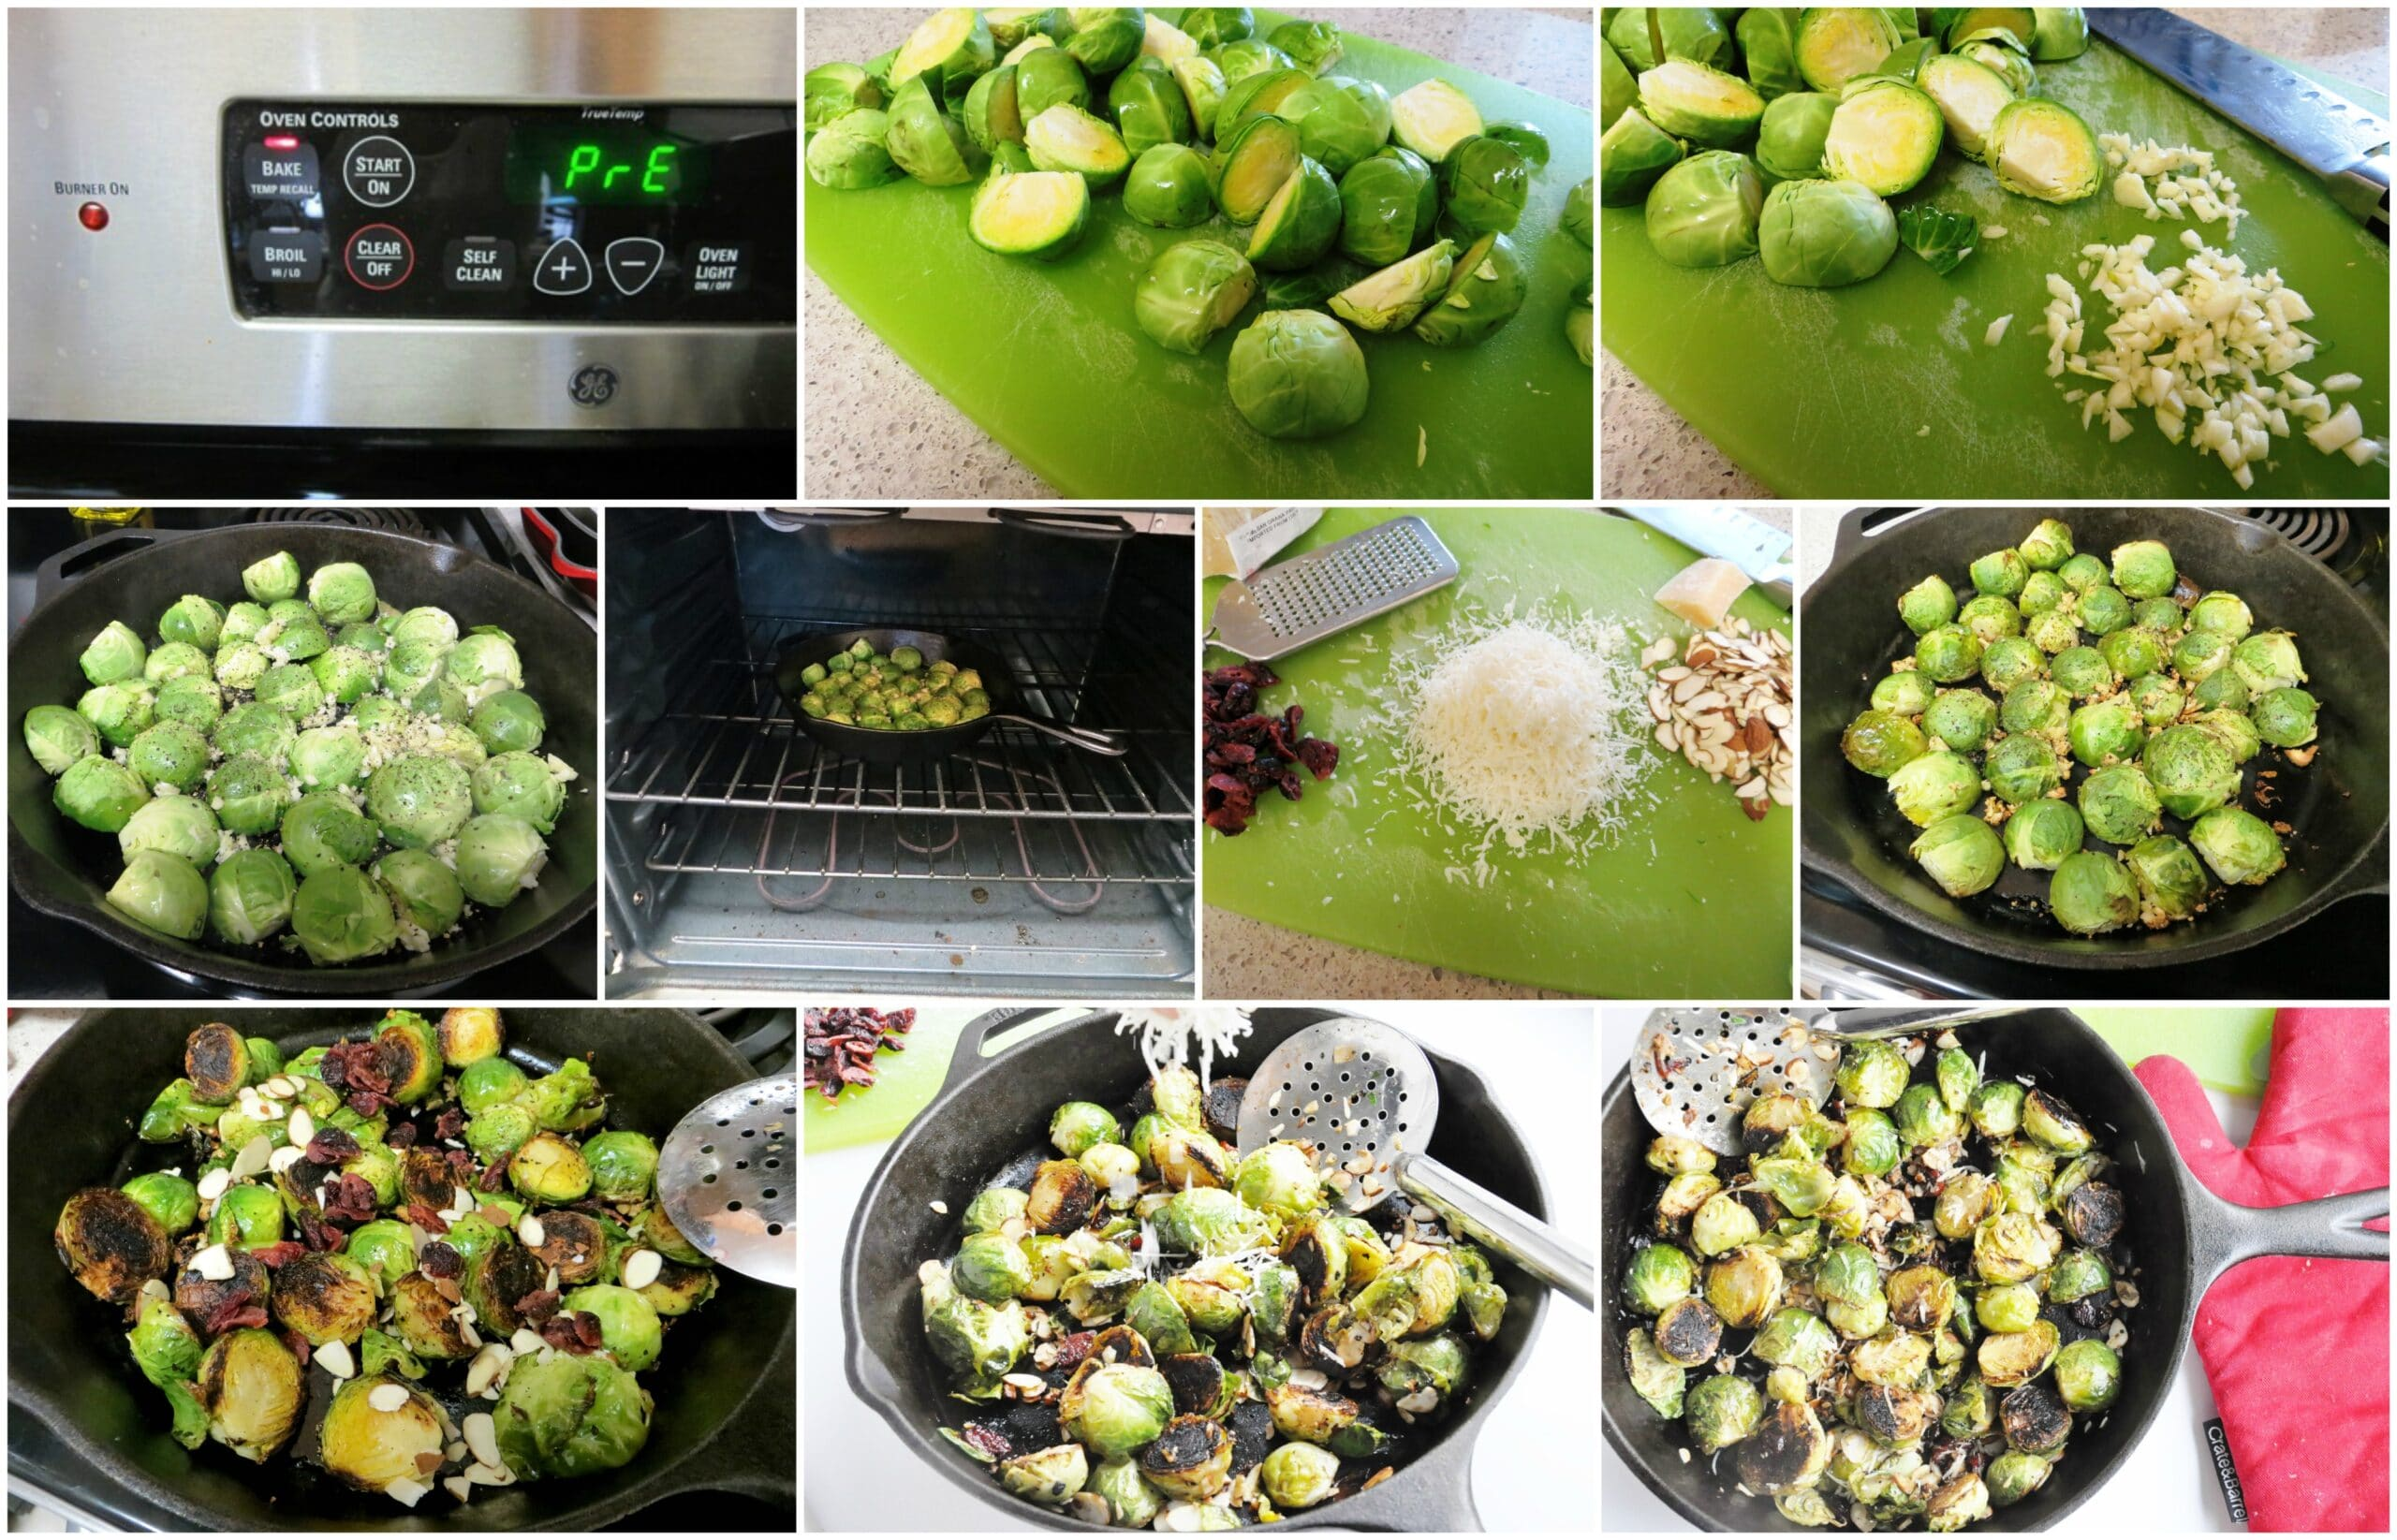 Cranberry Almond Roasted Brussels Sprouts step-by-step